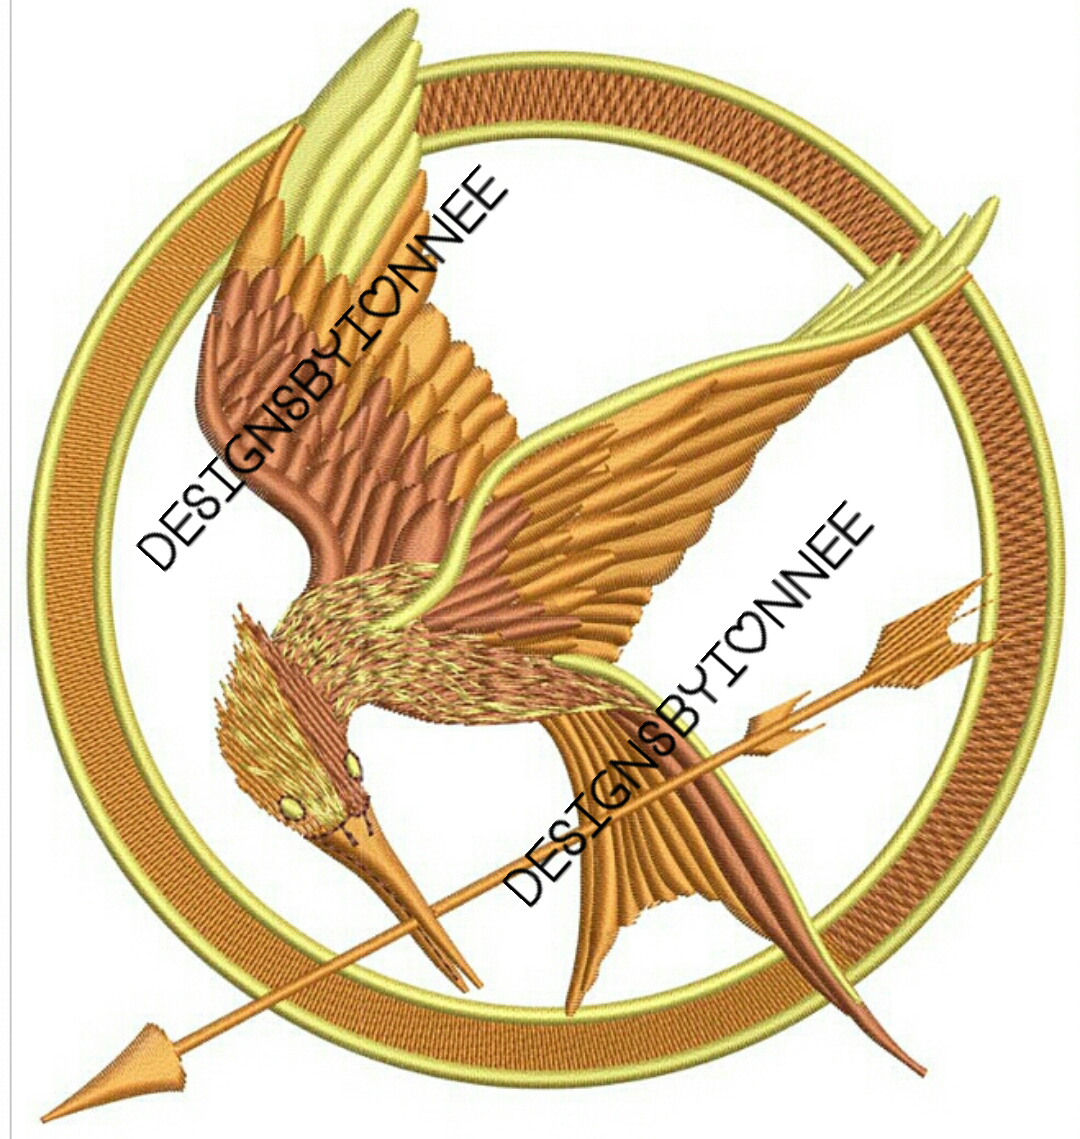 The Hunger Games Logo Embroidery Design 2 Sizes On Storenvy